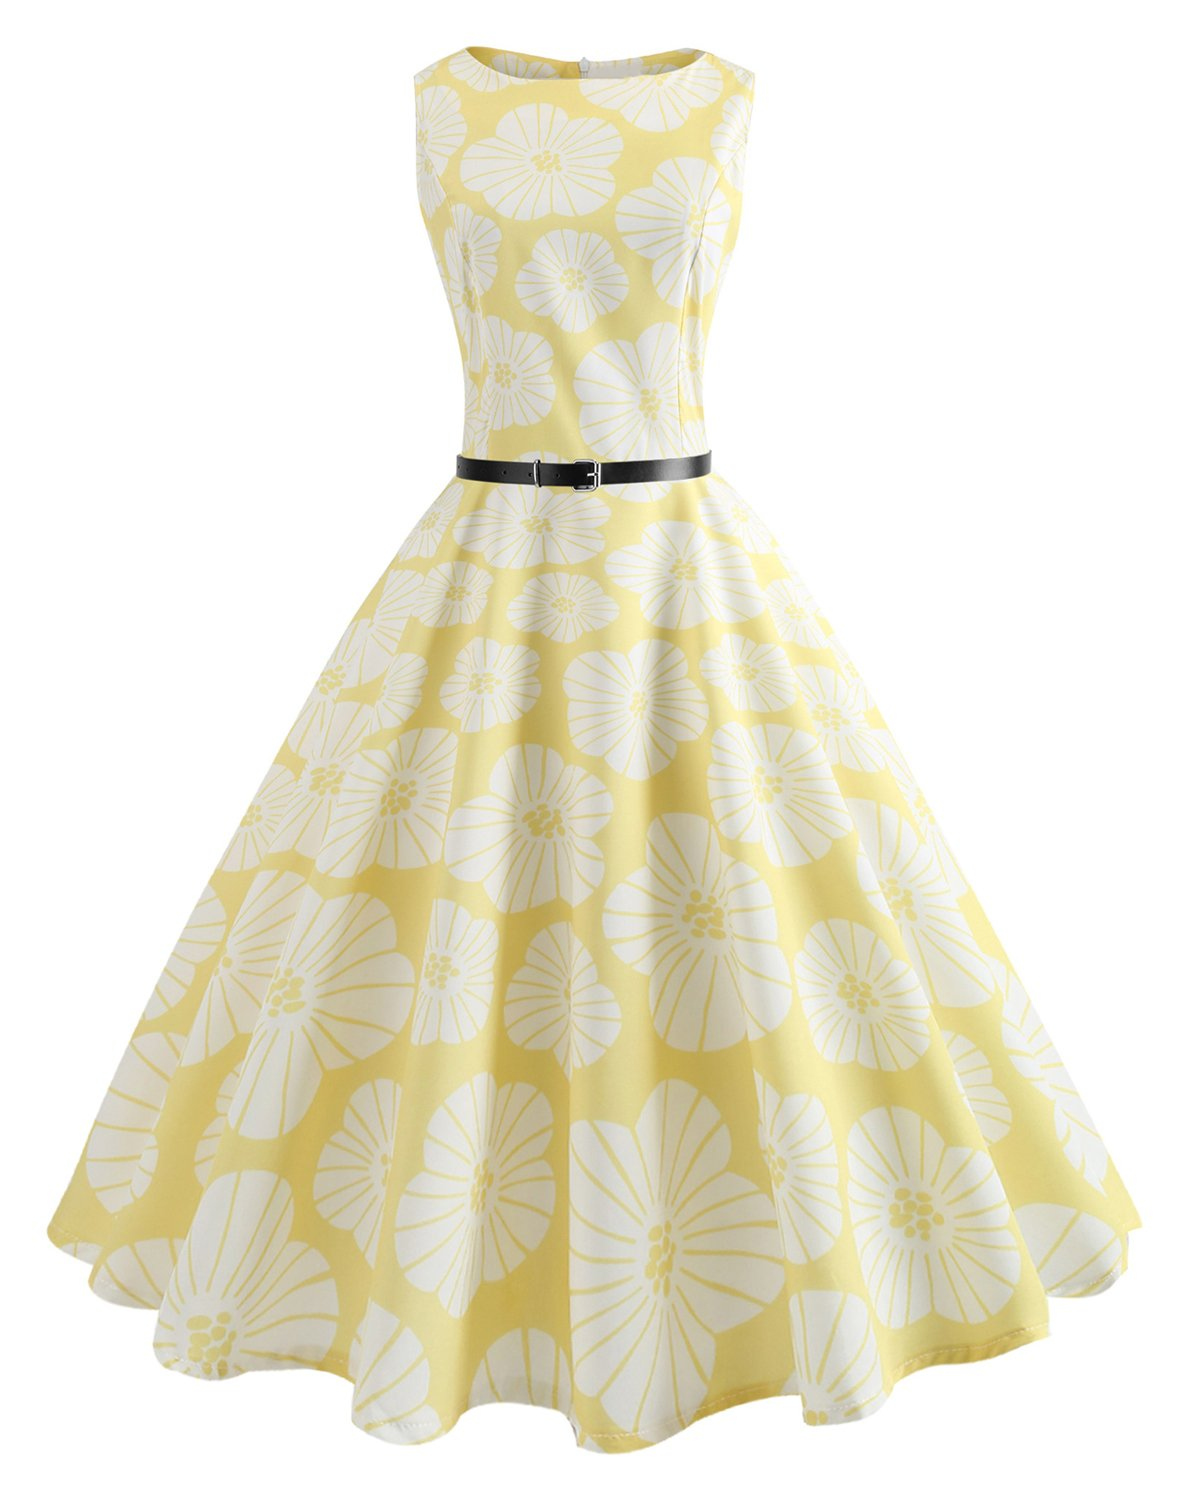 ZAFUL Women's 50s Vintage Summer Dress Boat Neck Sleeveless Floral Tea with Belt Cocktail Party A-Line Midi Dress(Yellow Flower,S)